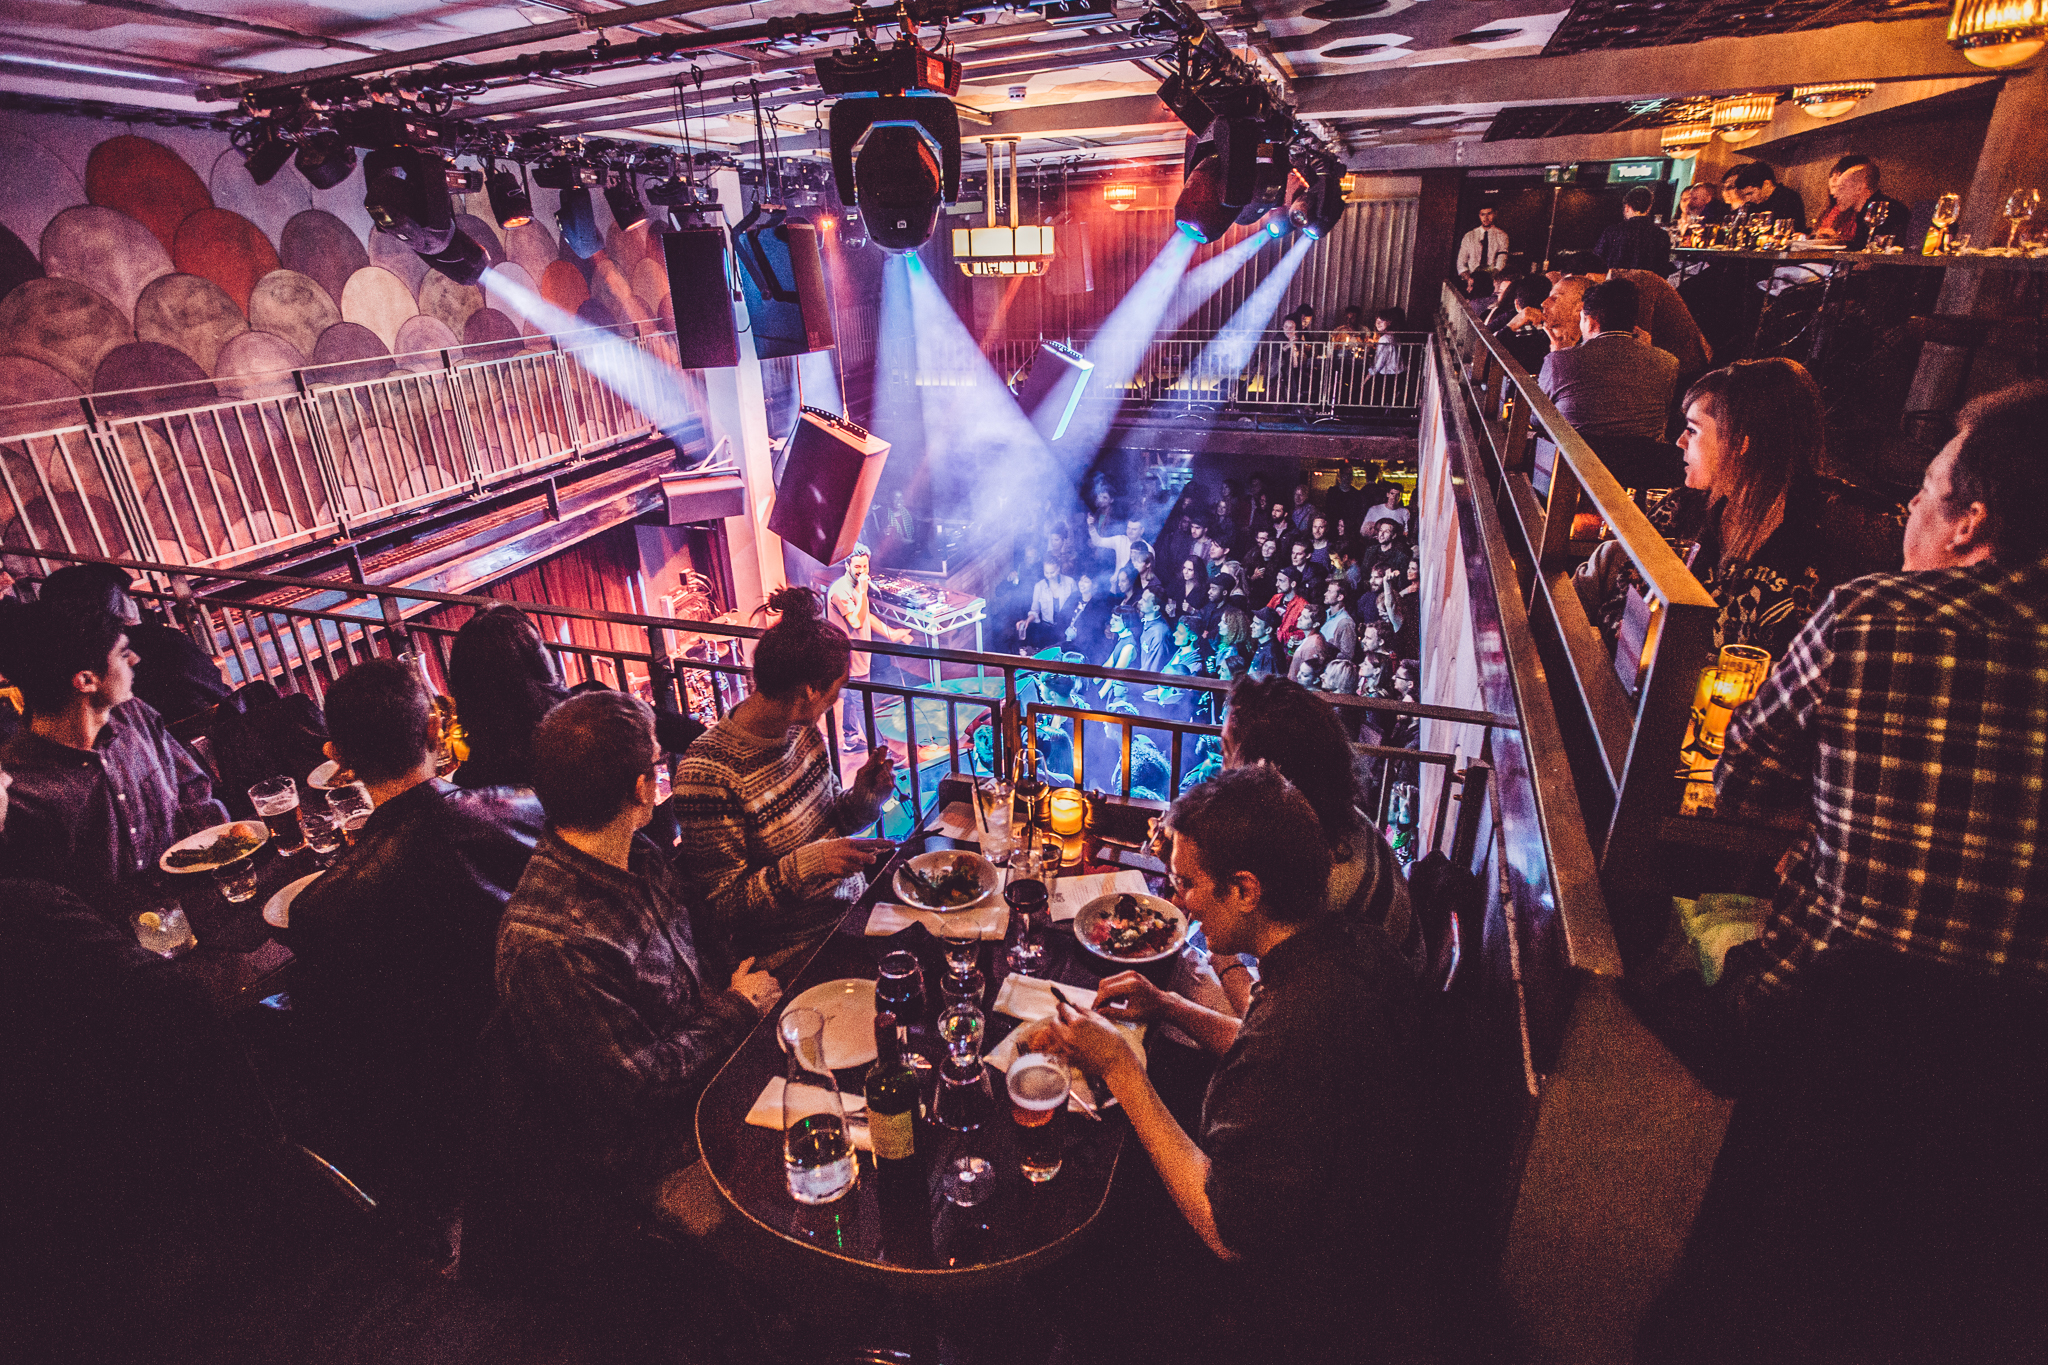 best clubs in london to get laid